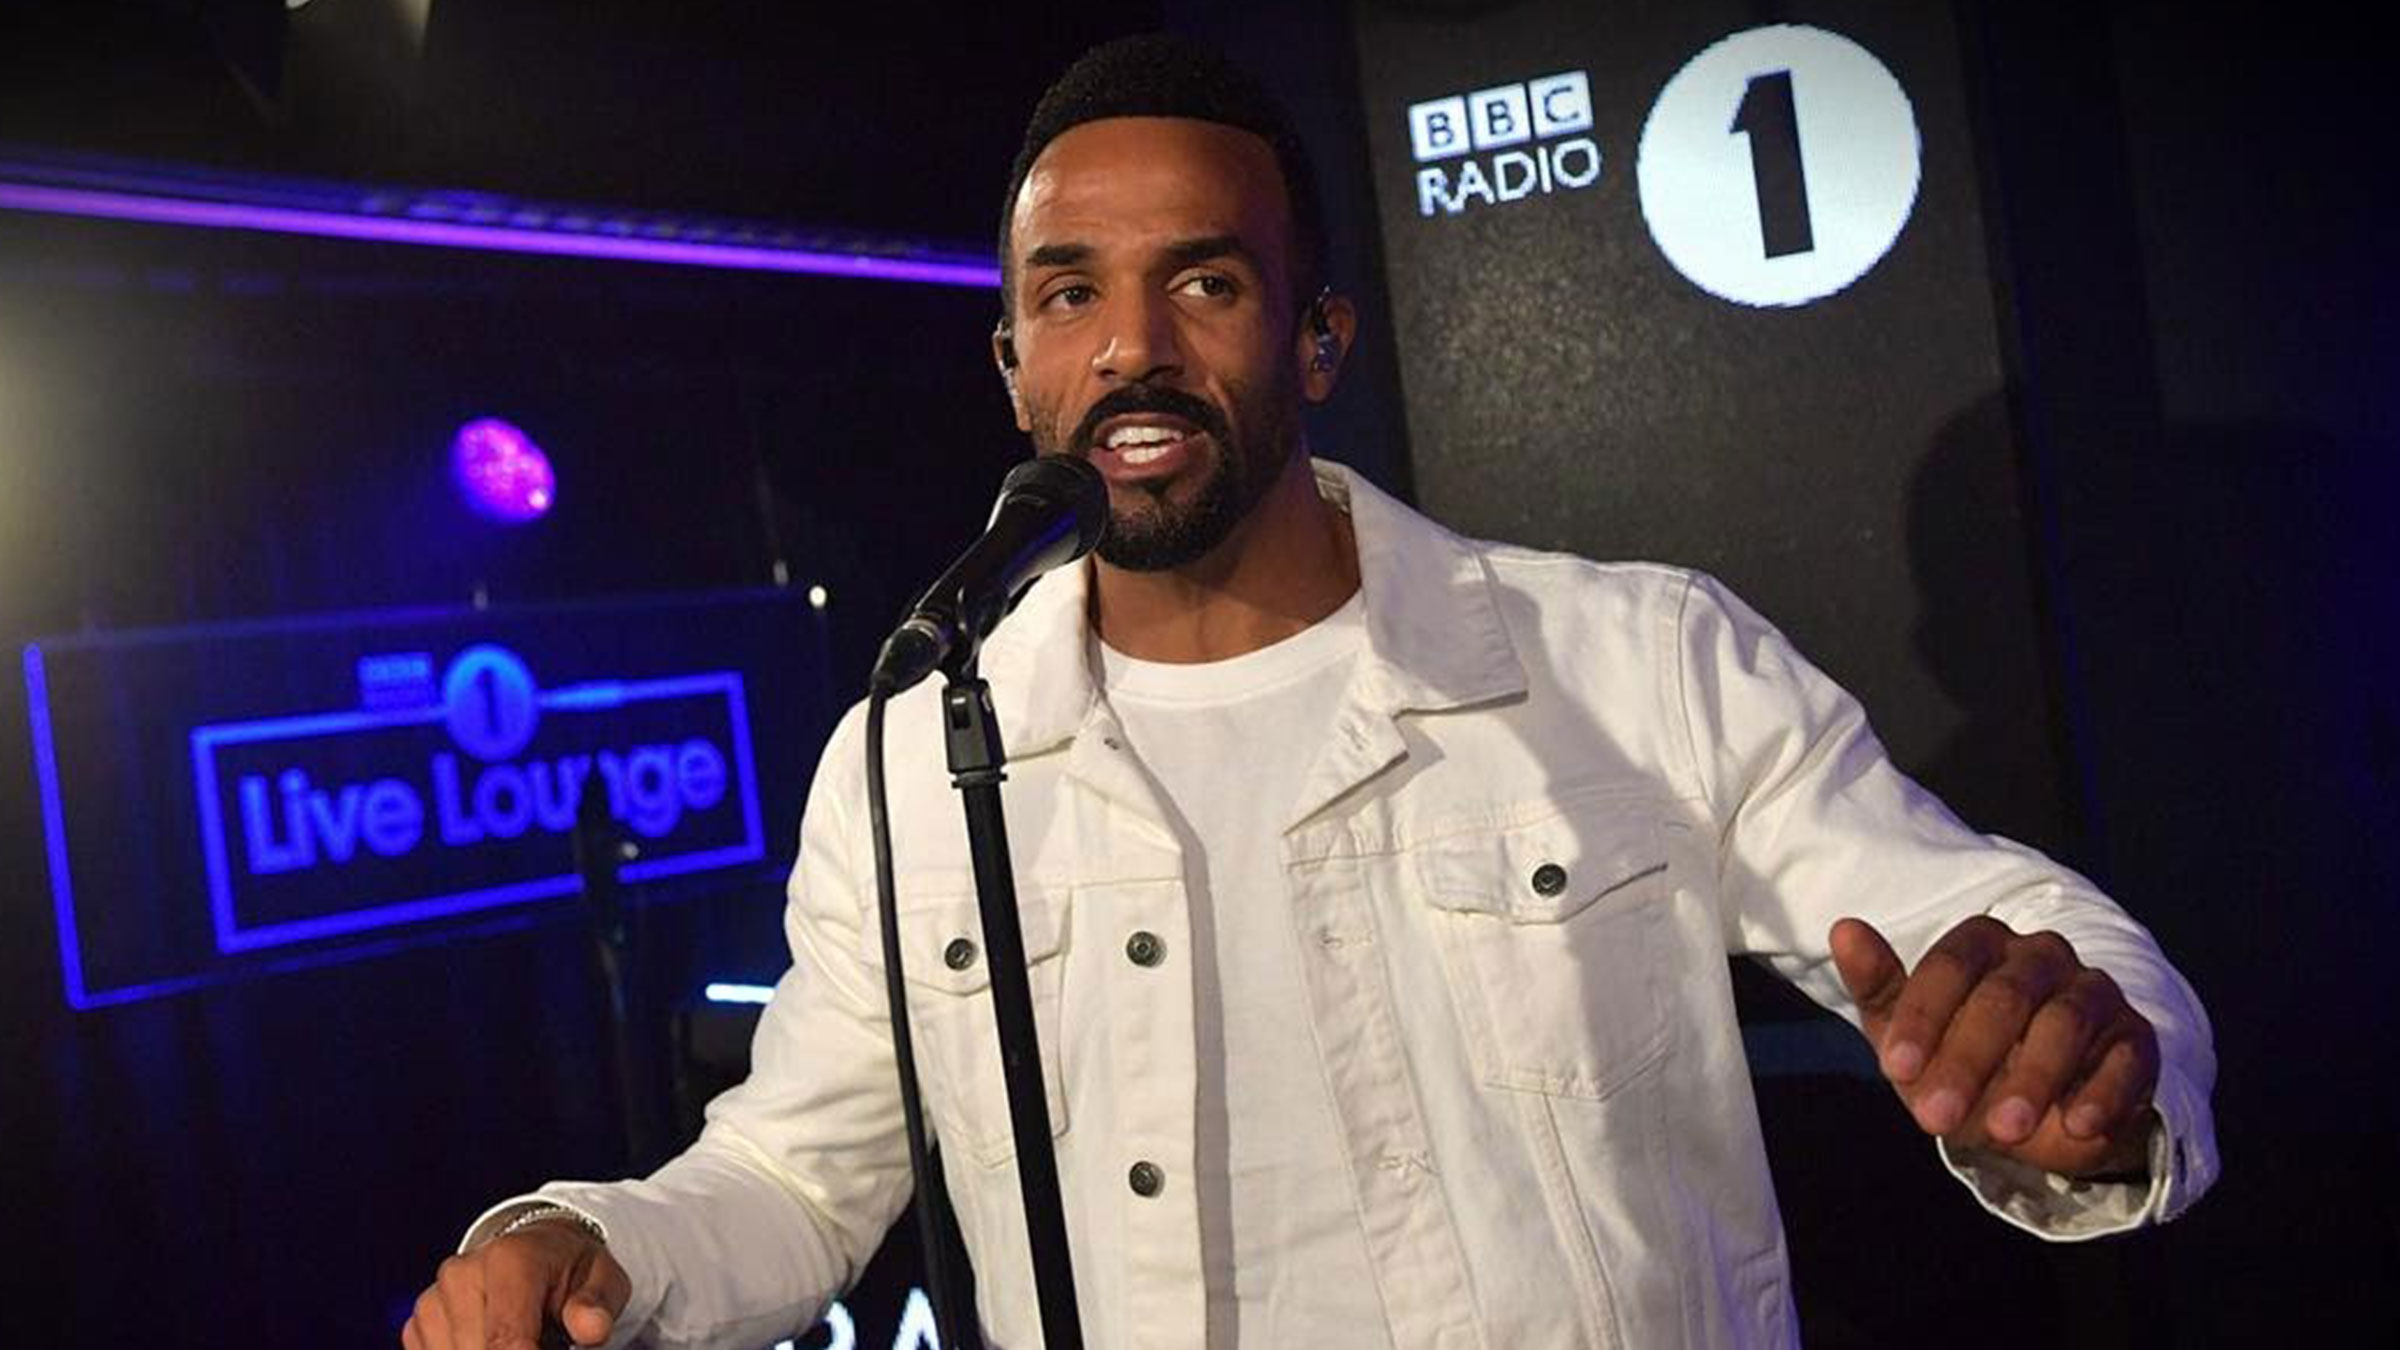 Craig david bbc home